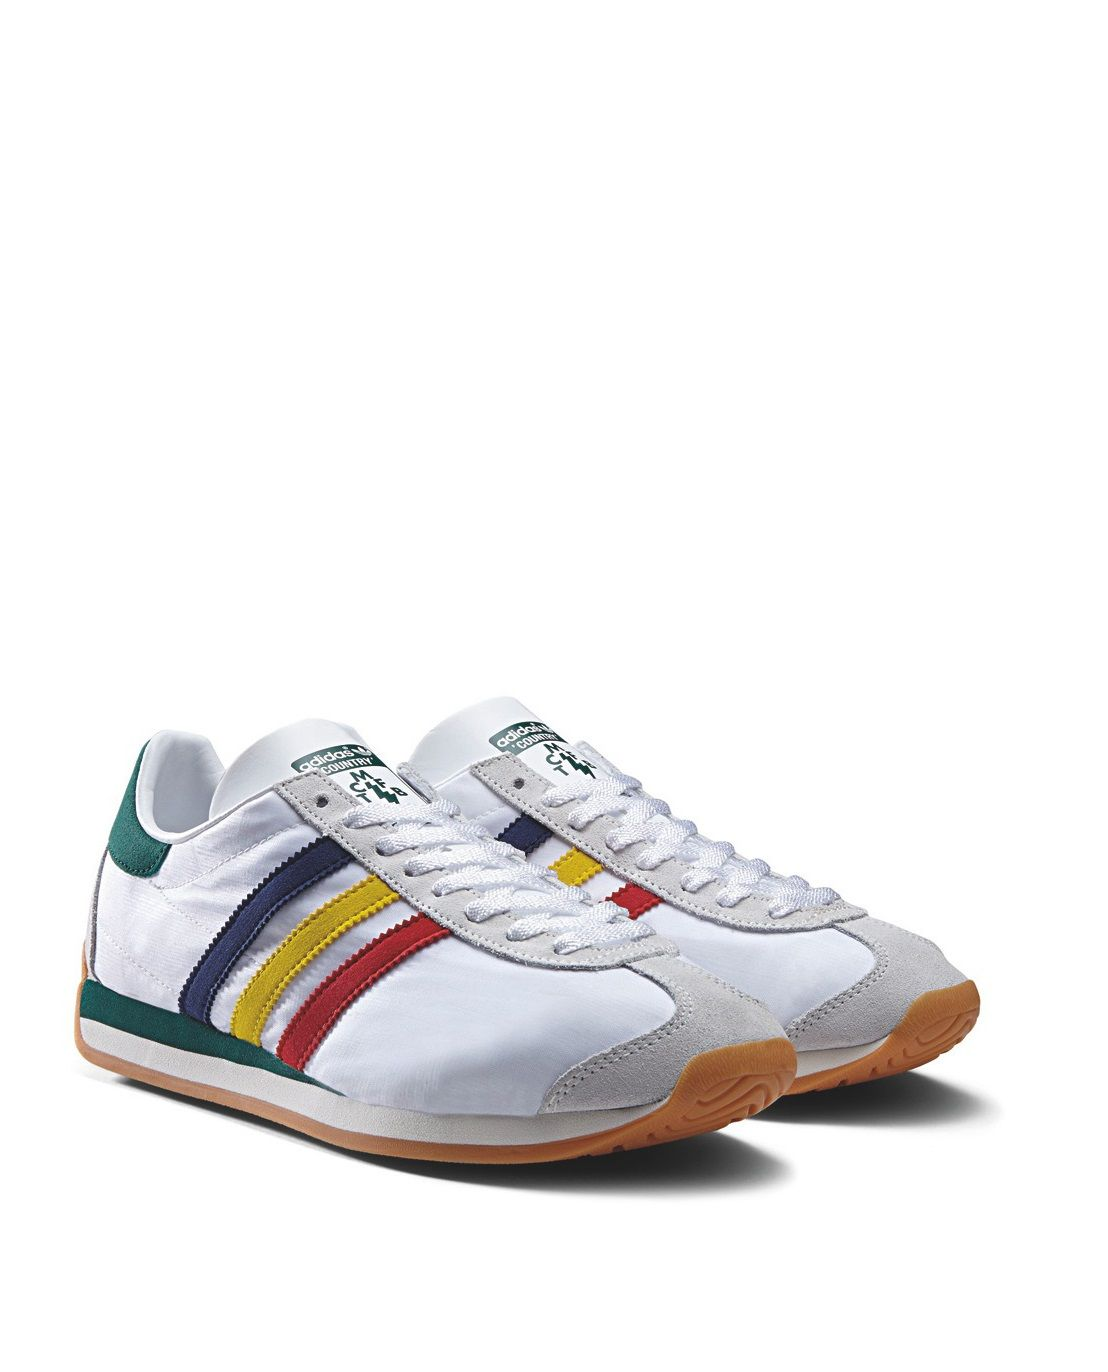 finest selection d54c8 b23e8 adidas Originals Country OG  White Green Blue